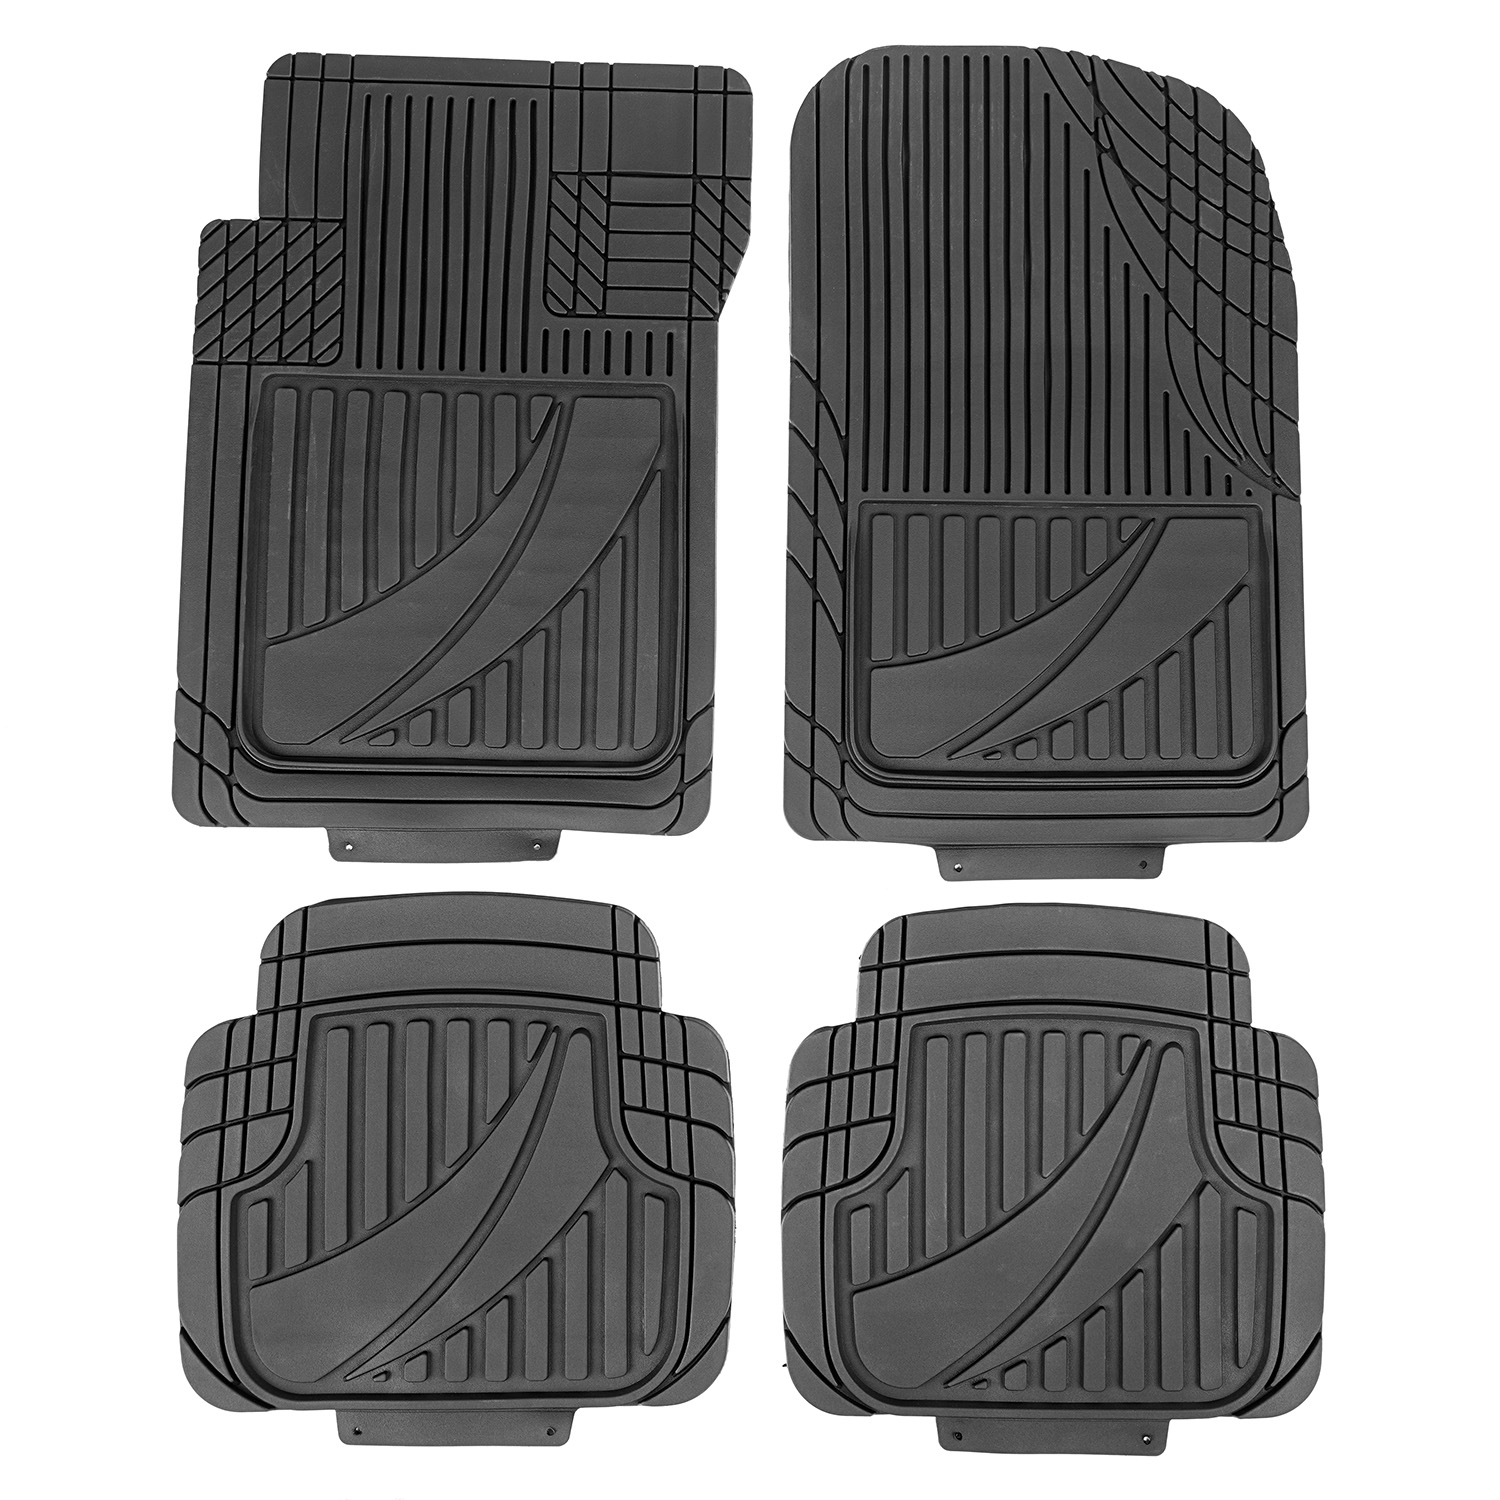 Universal Trim to Fit Floor Liners 4pc Set